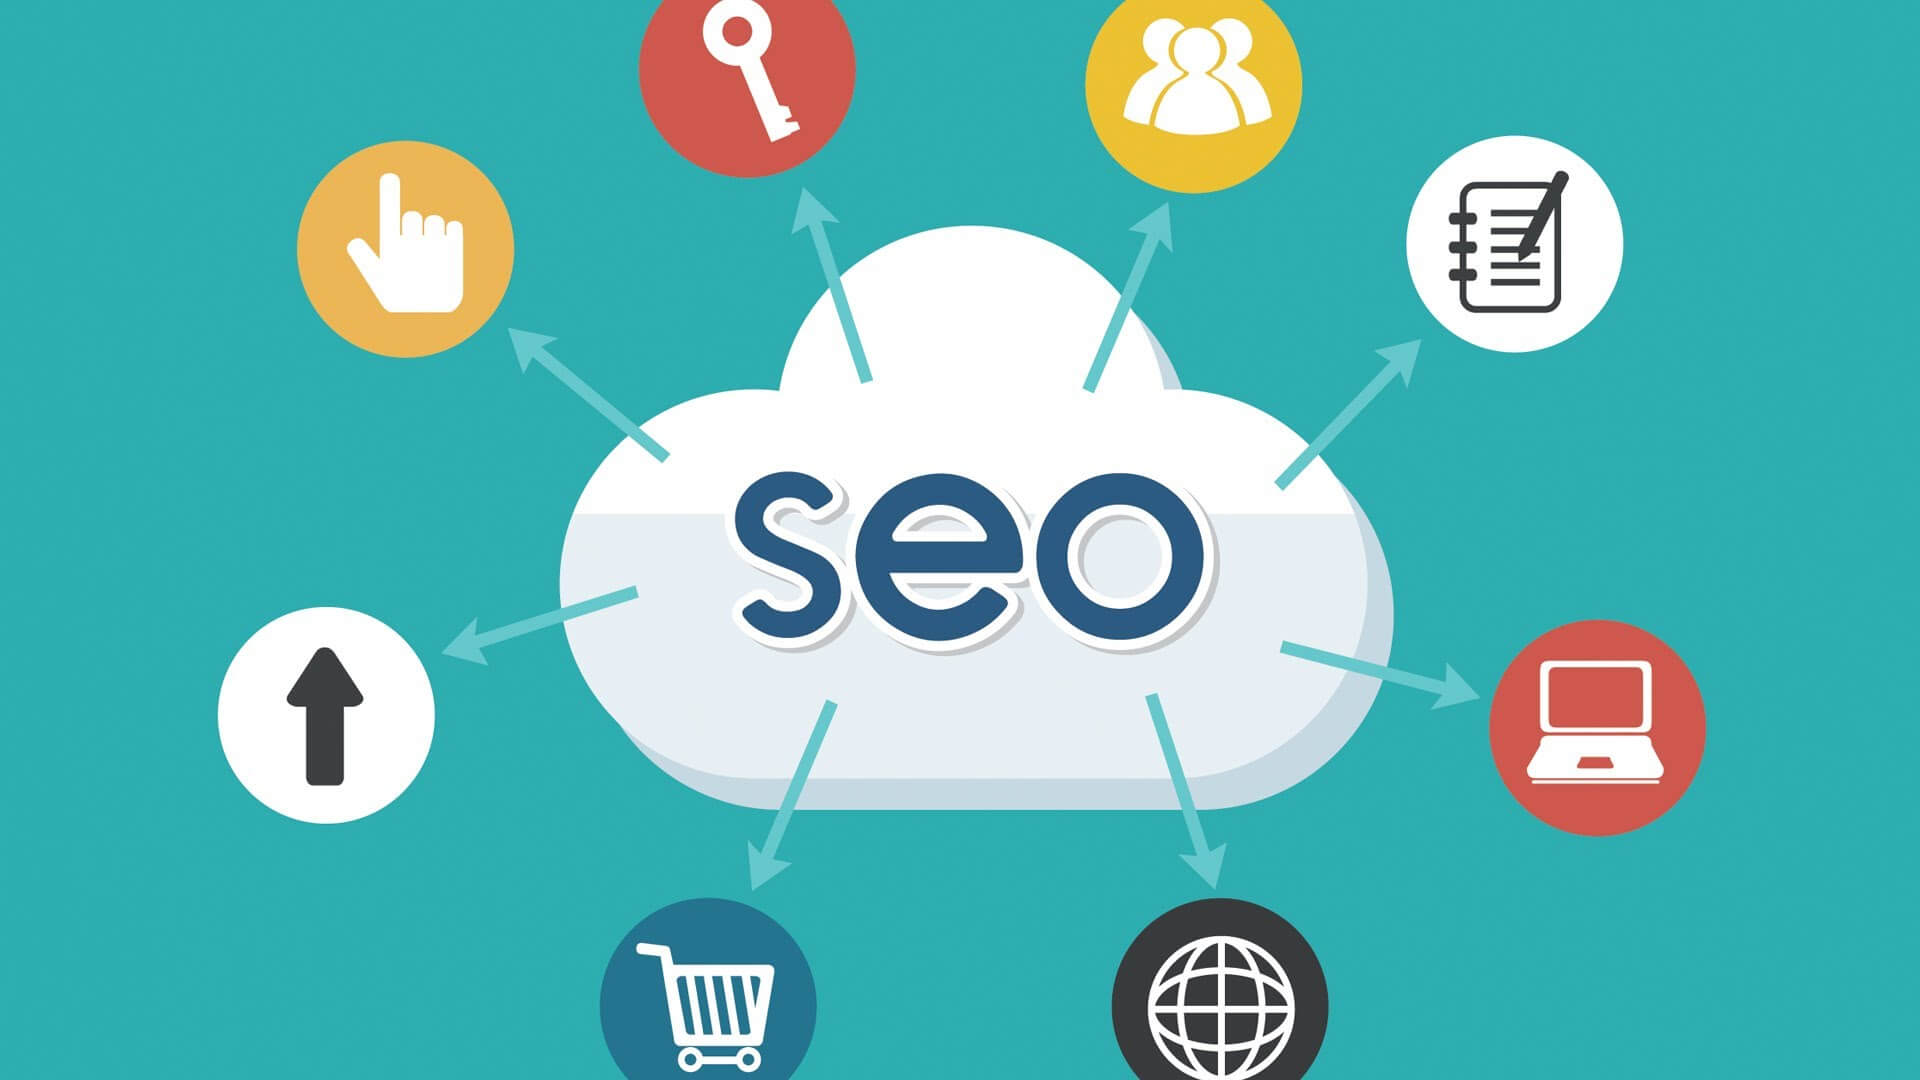 How to Optimize Your Website Content for SEO - HostPapa Blog